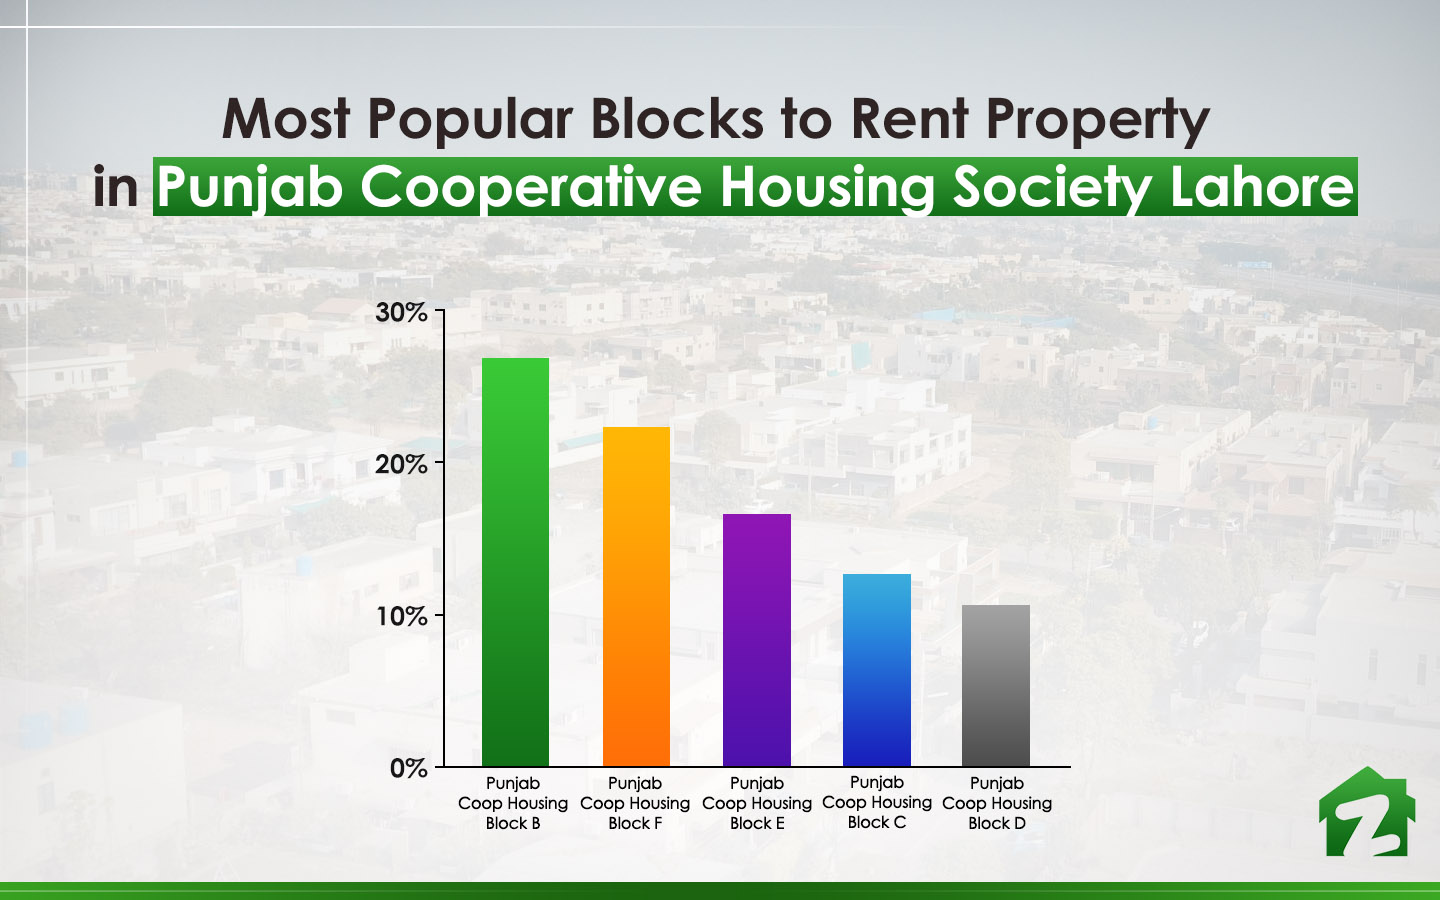 Most Popular Blocks to Rent Property in Punjab Cooperative Housing Society Lahore